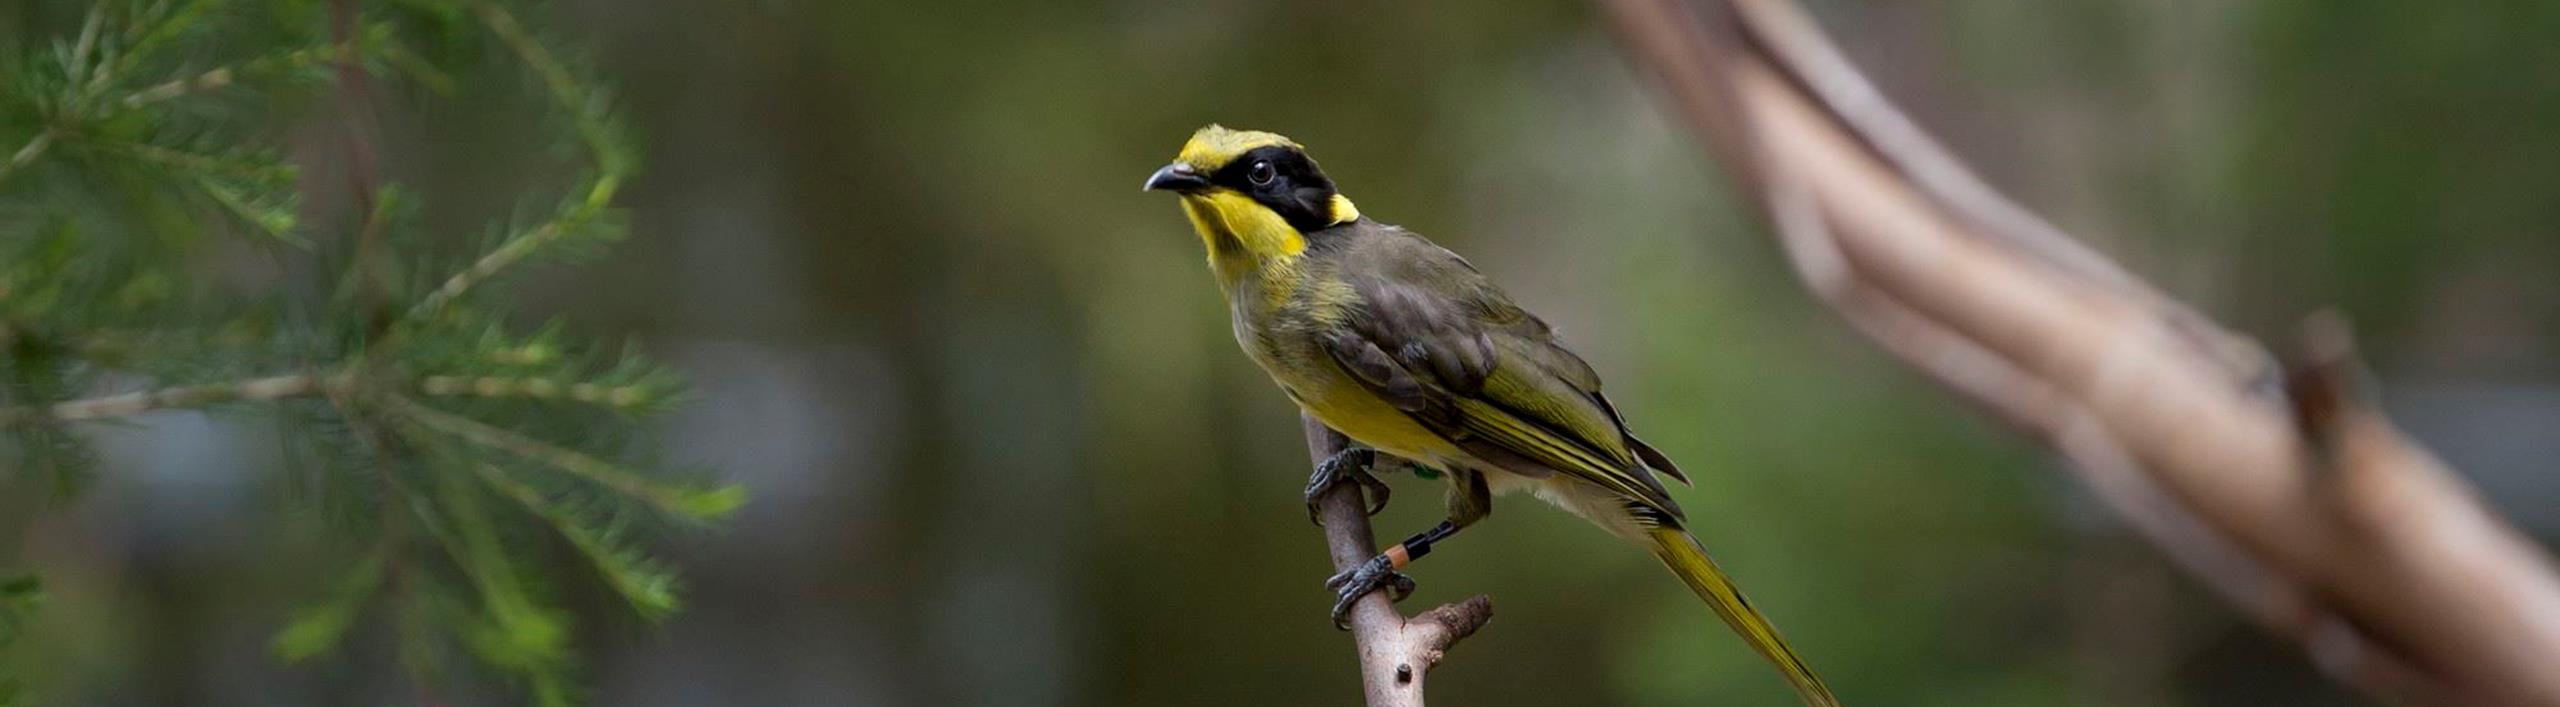 Young Helmeted Honeyeater sitting in a tree.